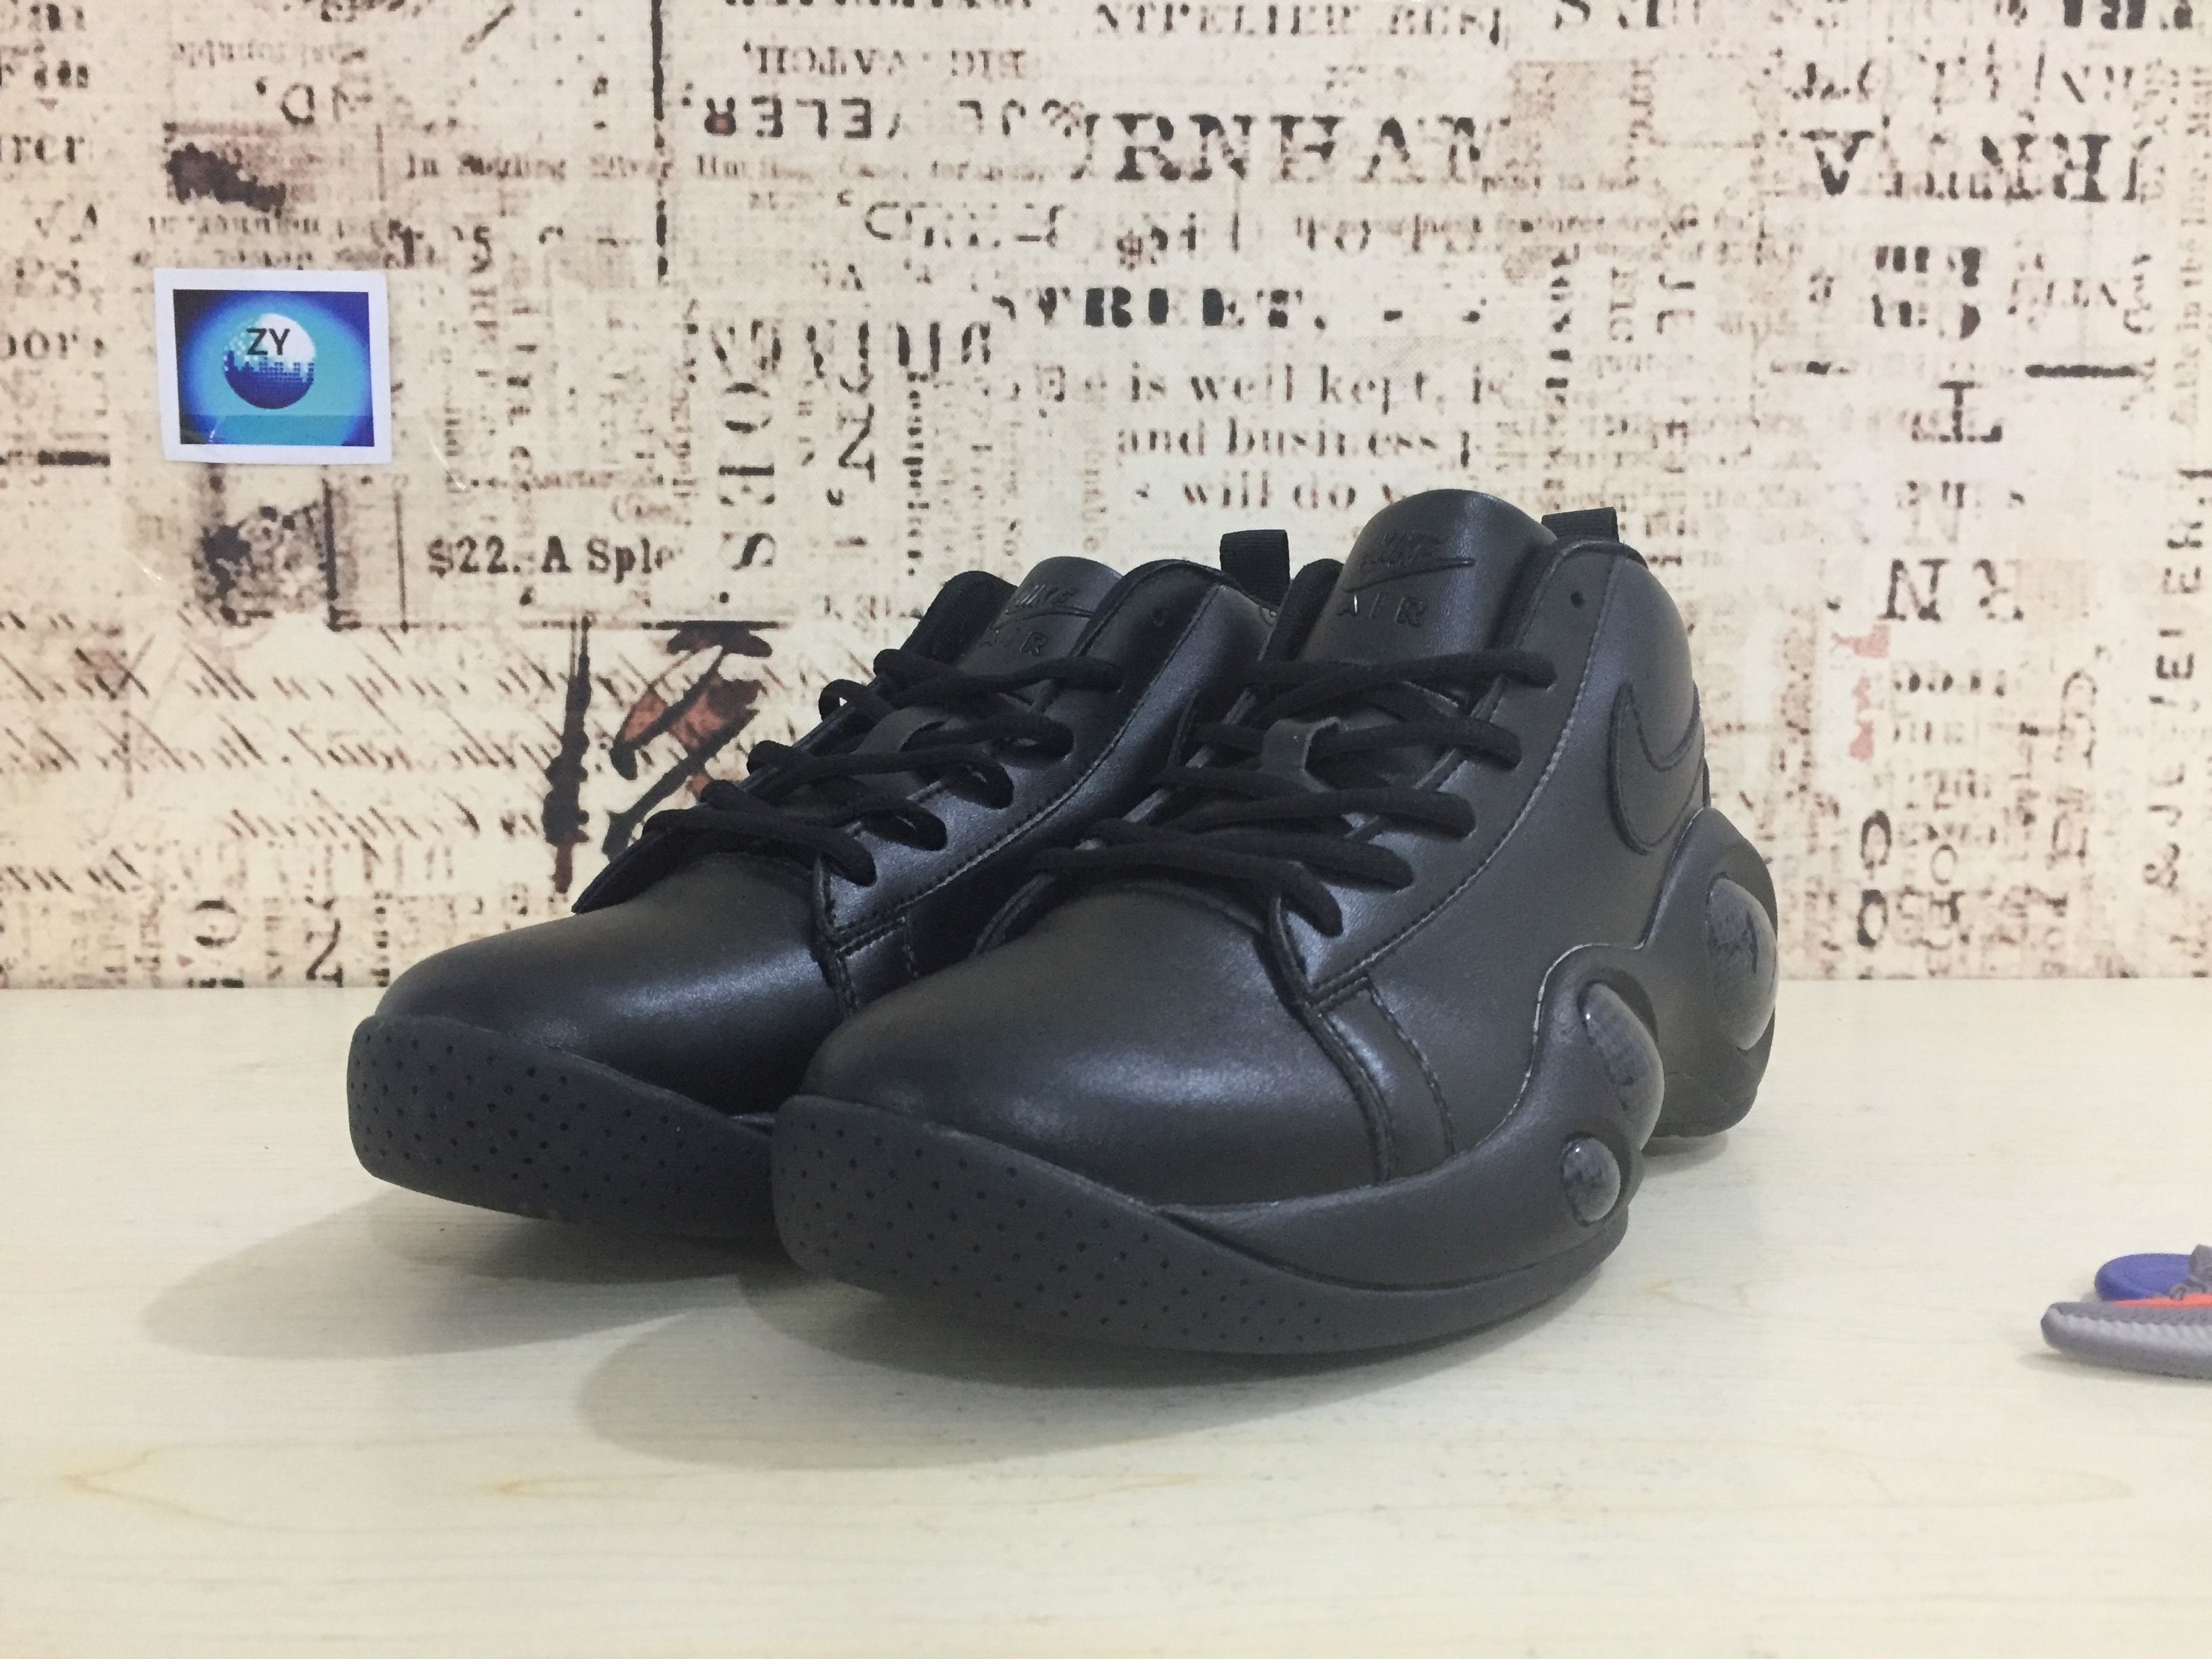 Nike Zoom Bonafide All Black Shoes